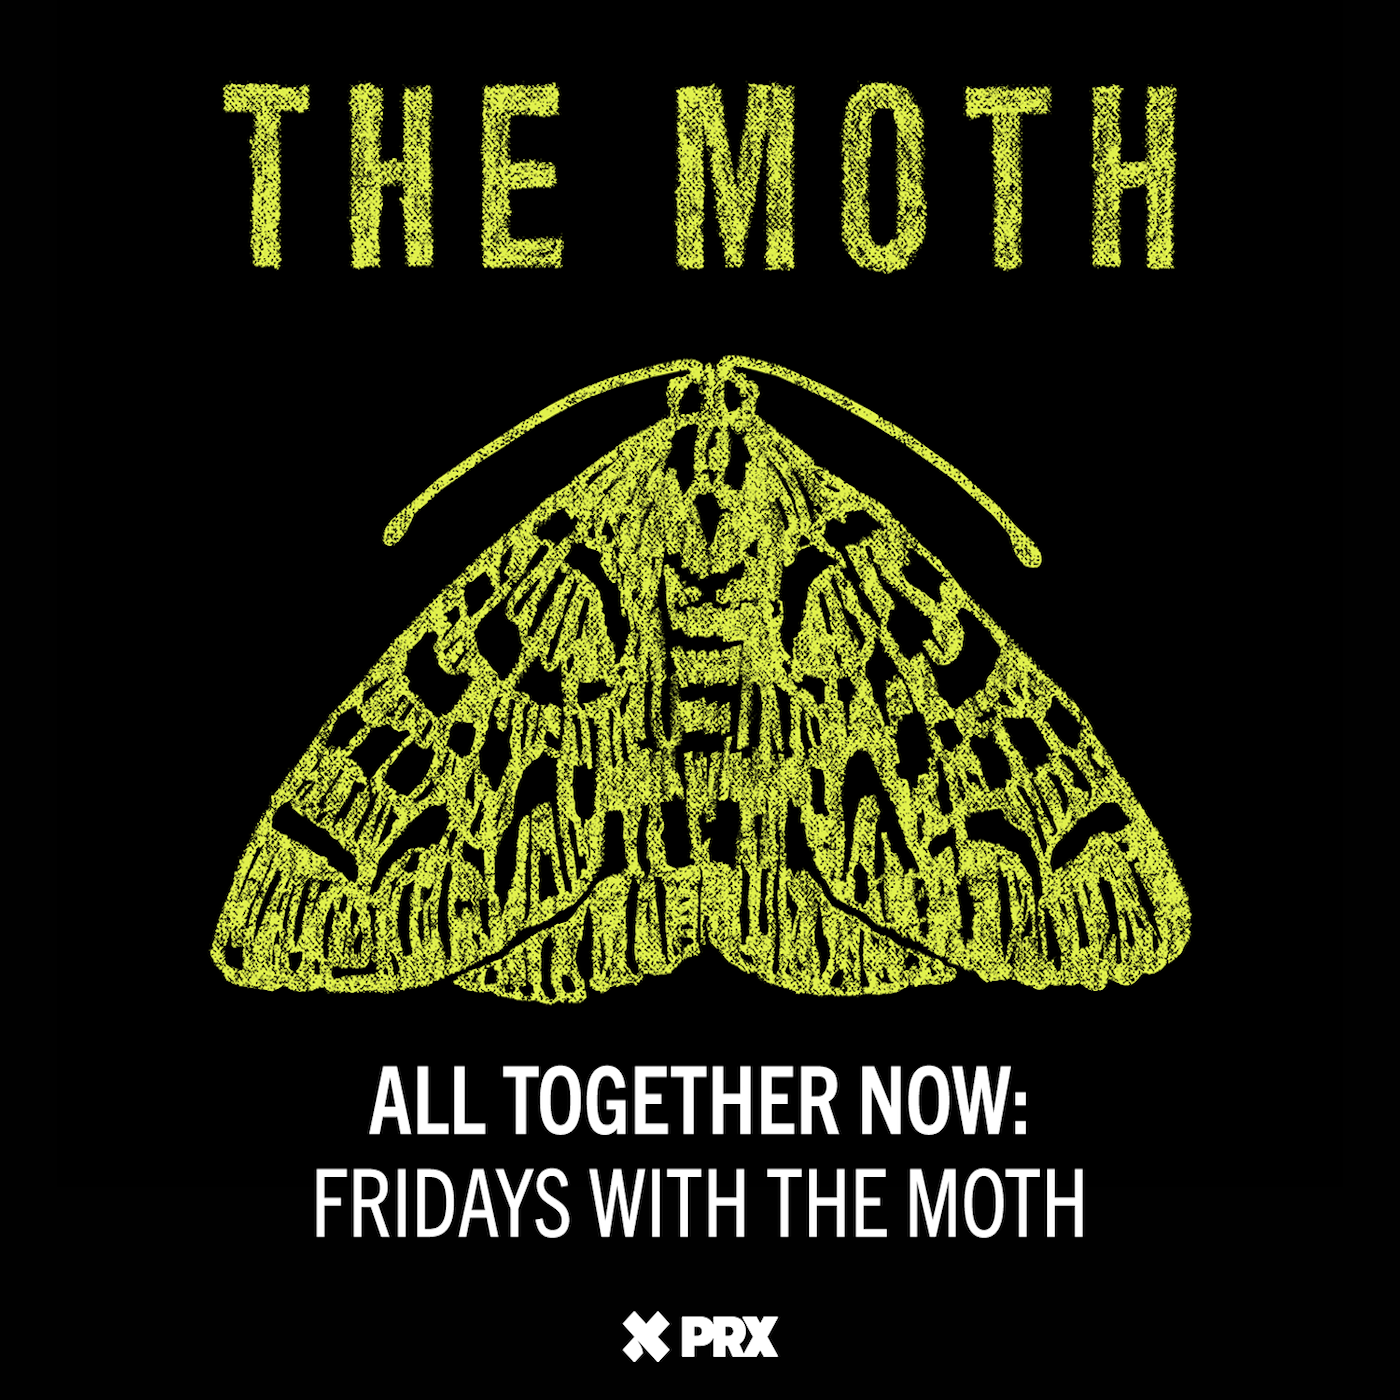 All Together Now: Fridays with The Moth: Shawna Renee Collins & Audrey Pleasant